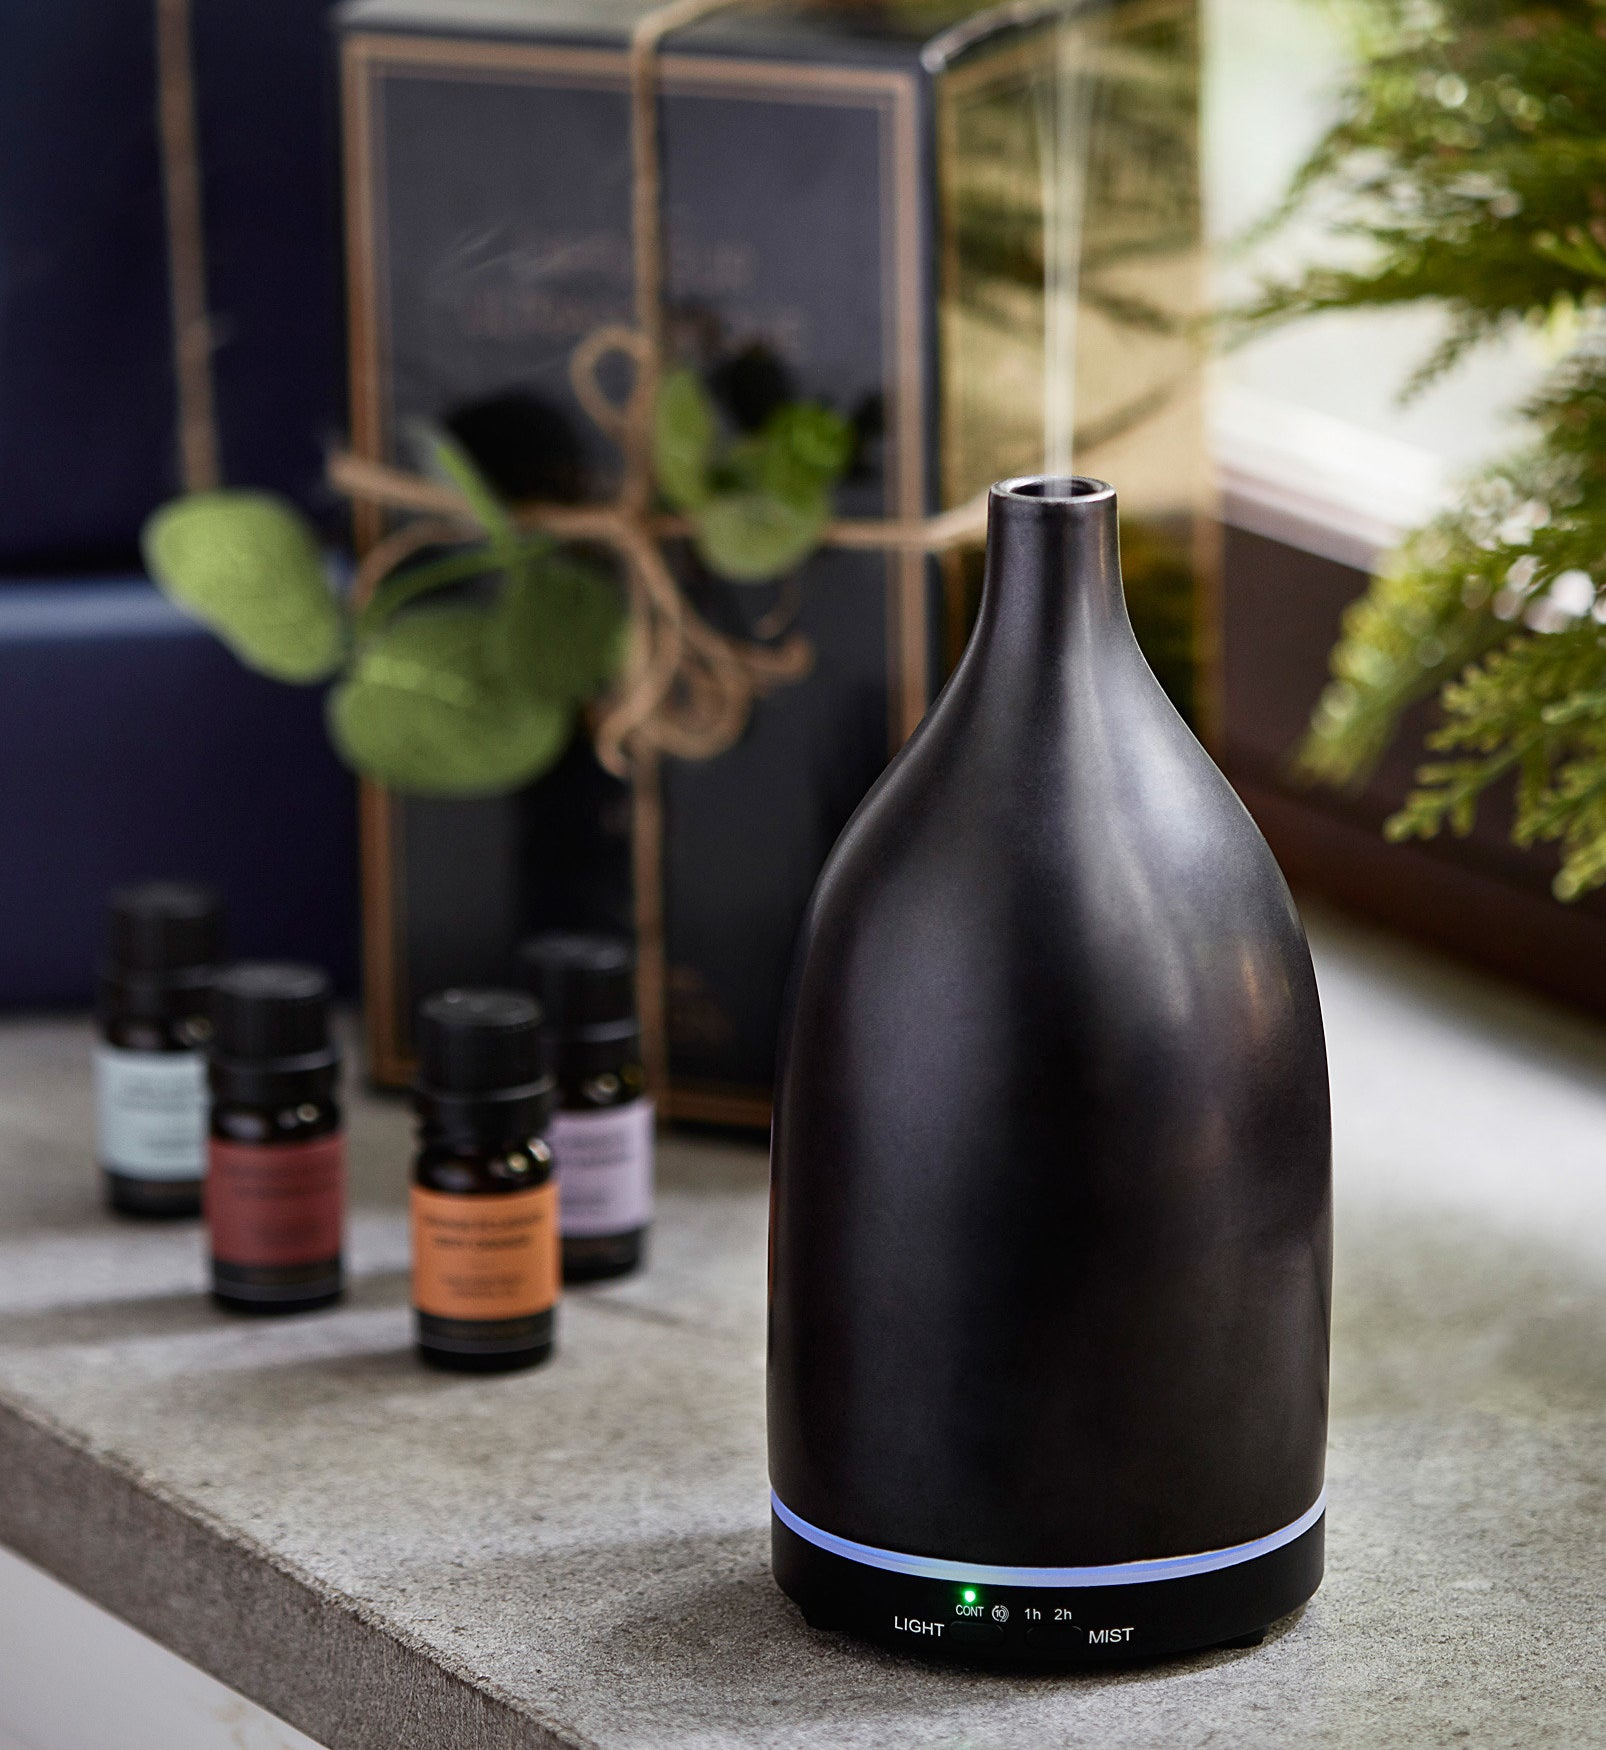 A ceramic diffuser that looks like a vase